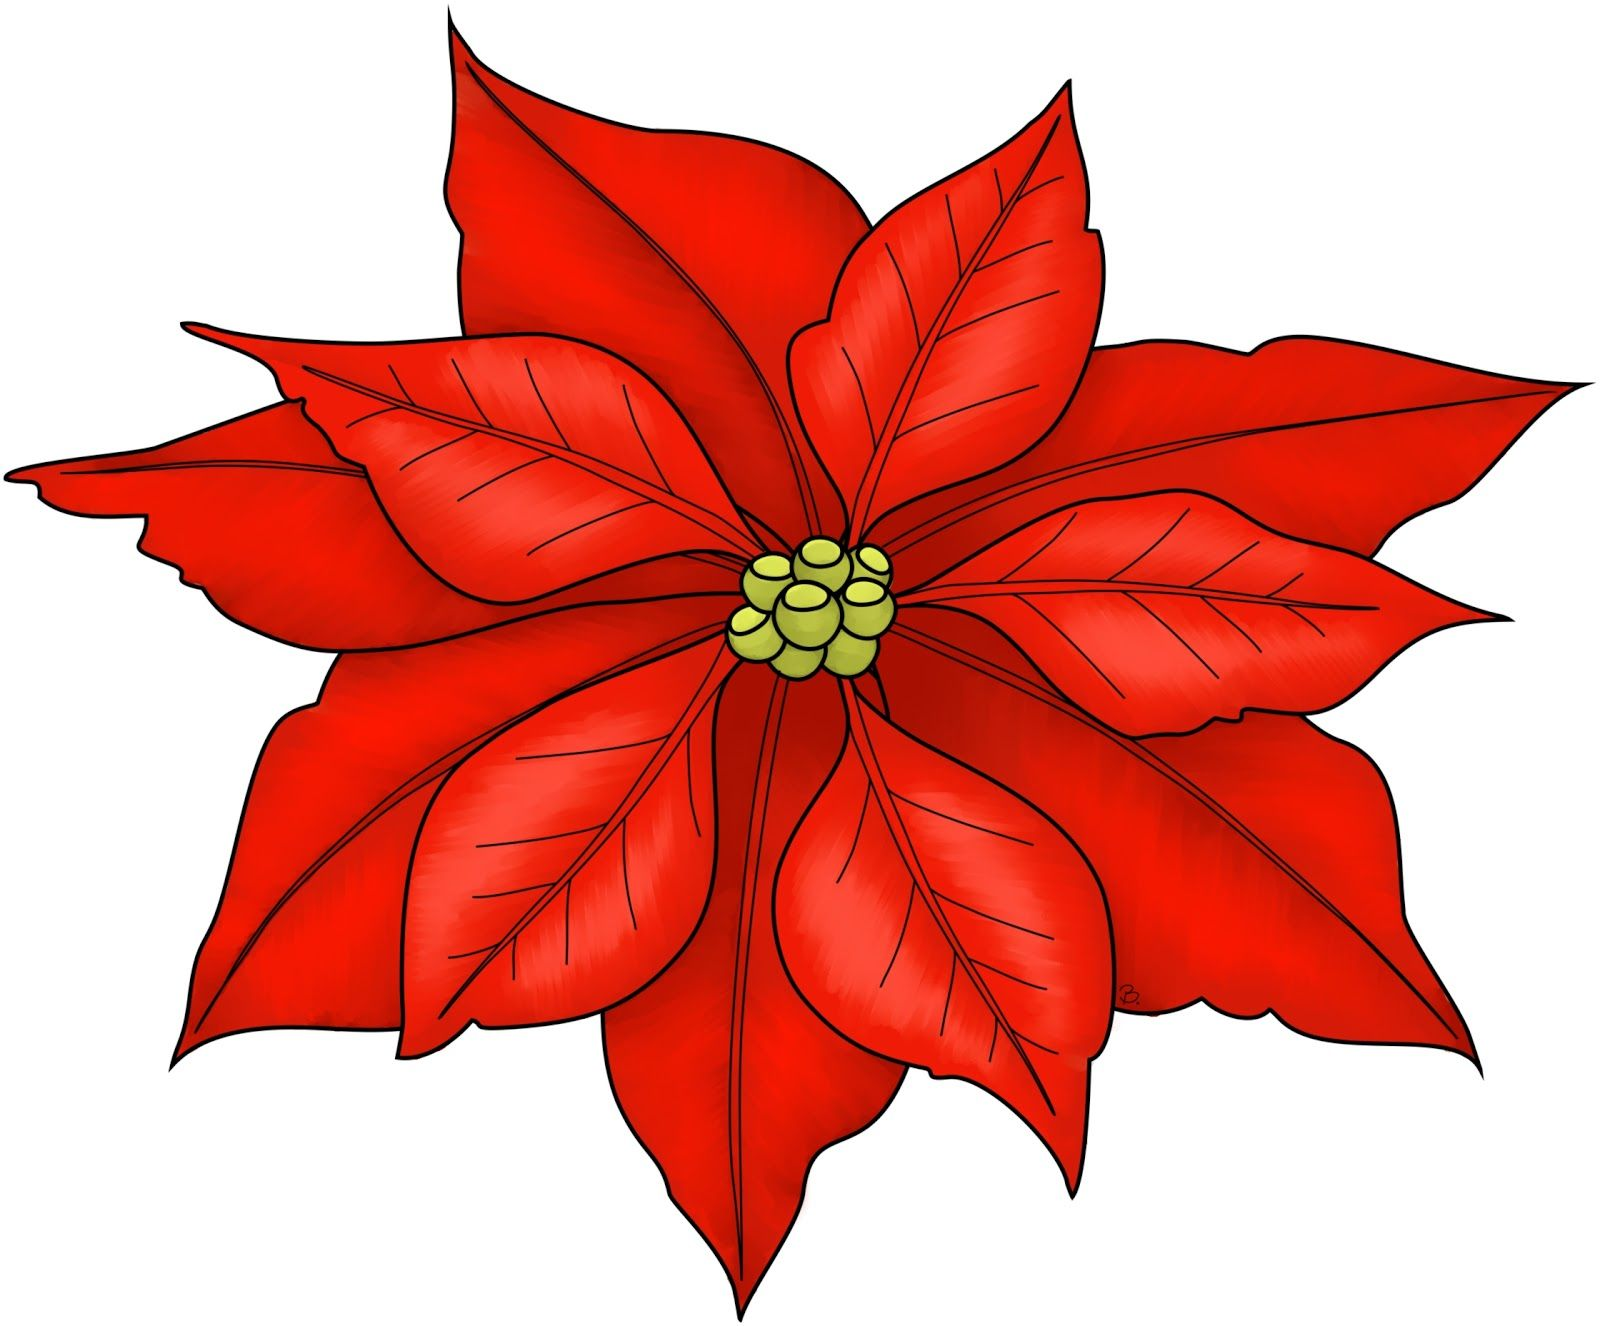 celebrate this day by reading the beautiful story the legend of the rh pinterest com poinsettia clipart for embroidery poinsettia clipart for embroidery